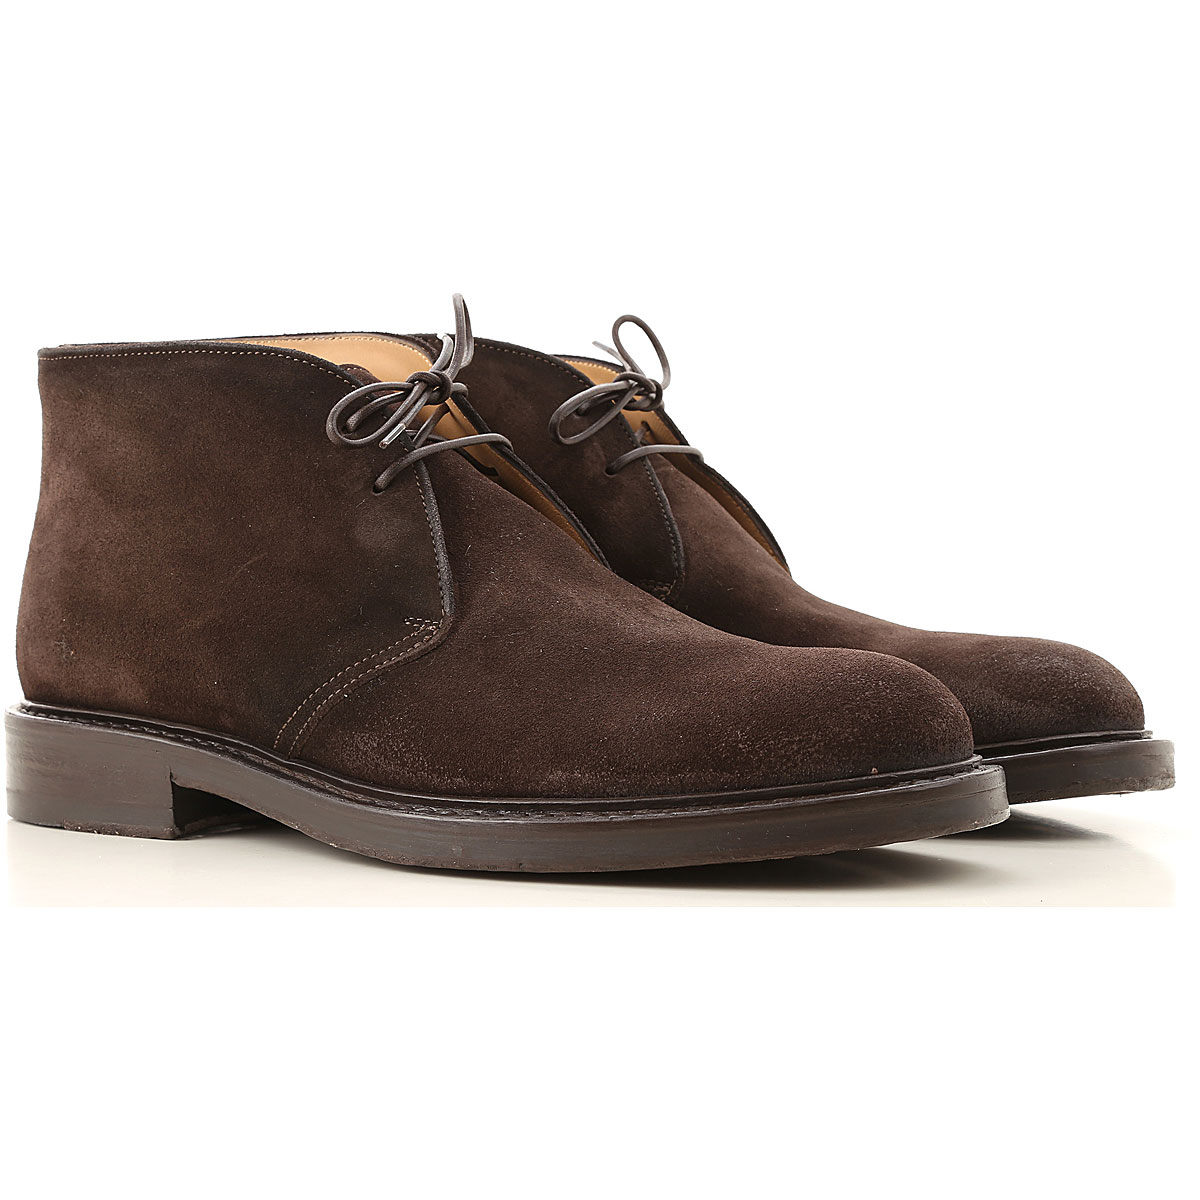 Seboys Desert Boots Chukka for Men On Sale, Dark Brown, Suede leather, 2019, 7 7.5 7.75 8 8.5 9 9.5